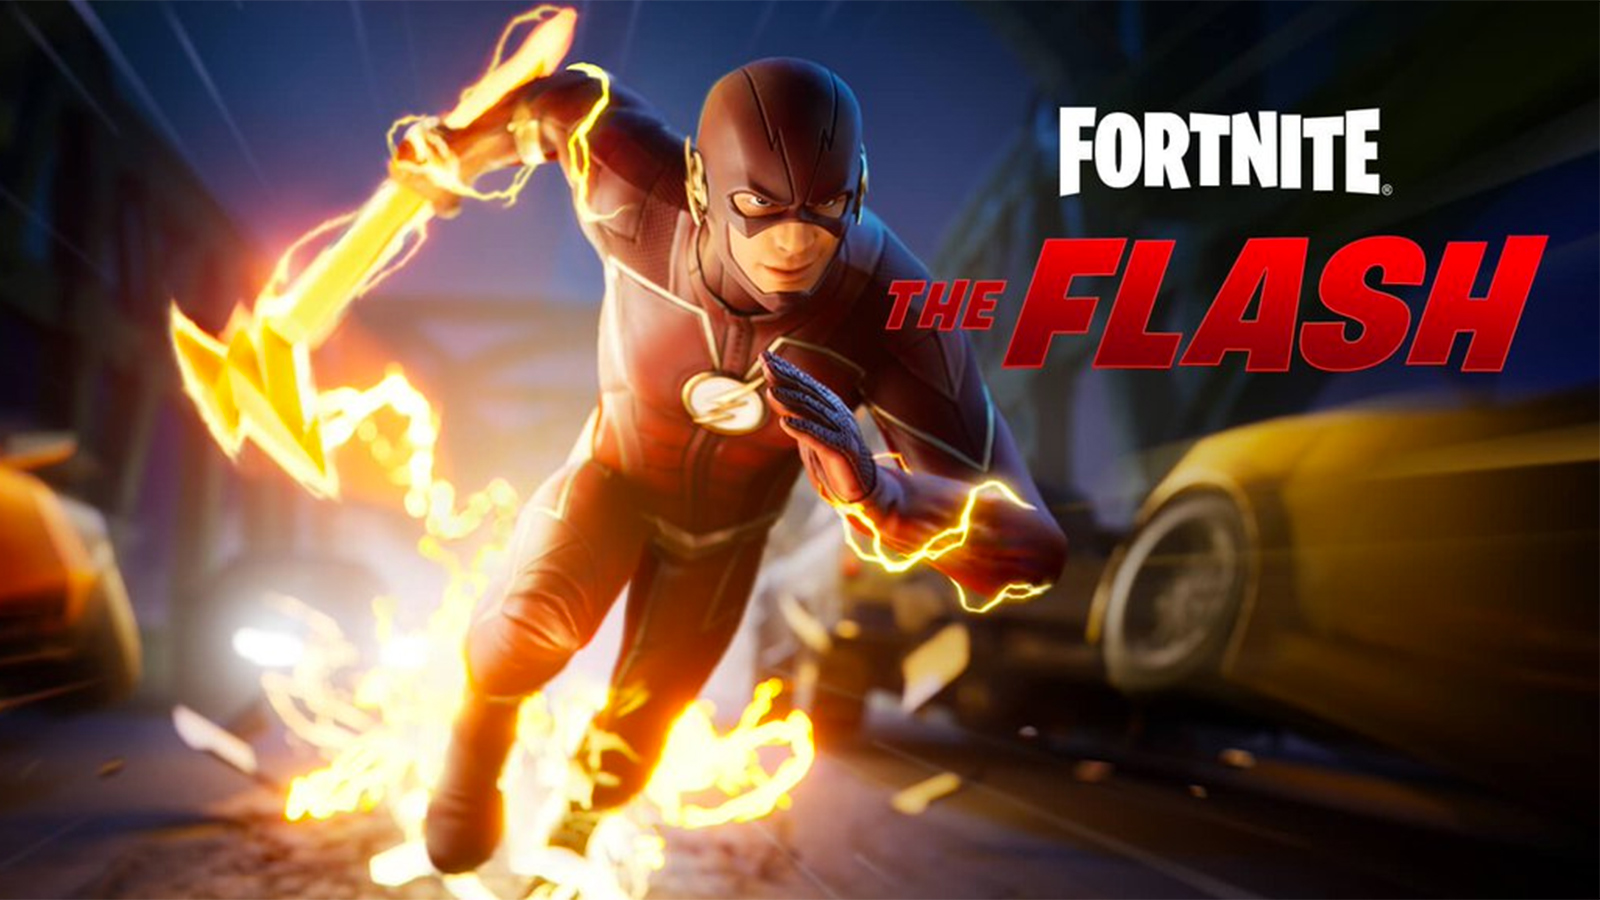 Fortnite The Flash Loading Screen